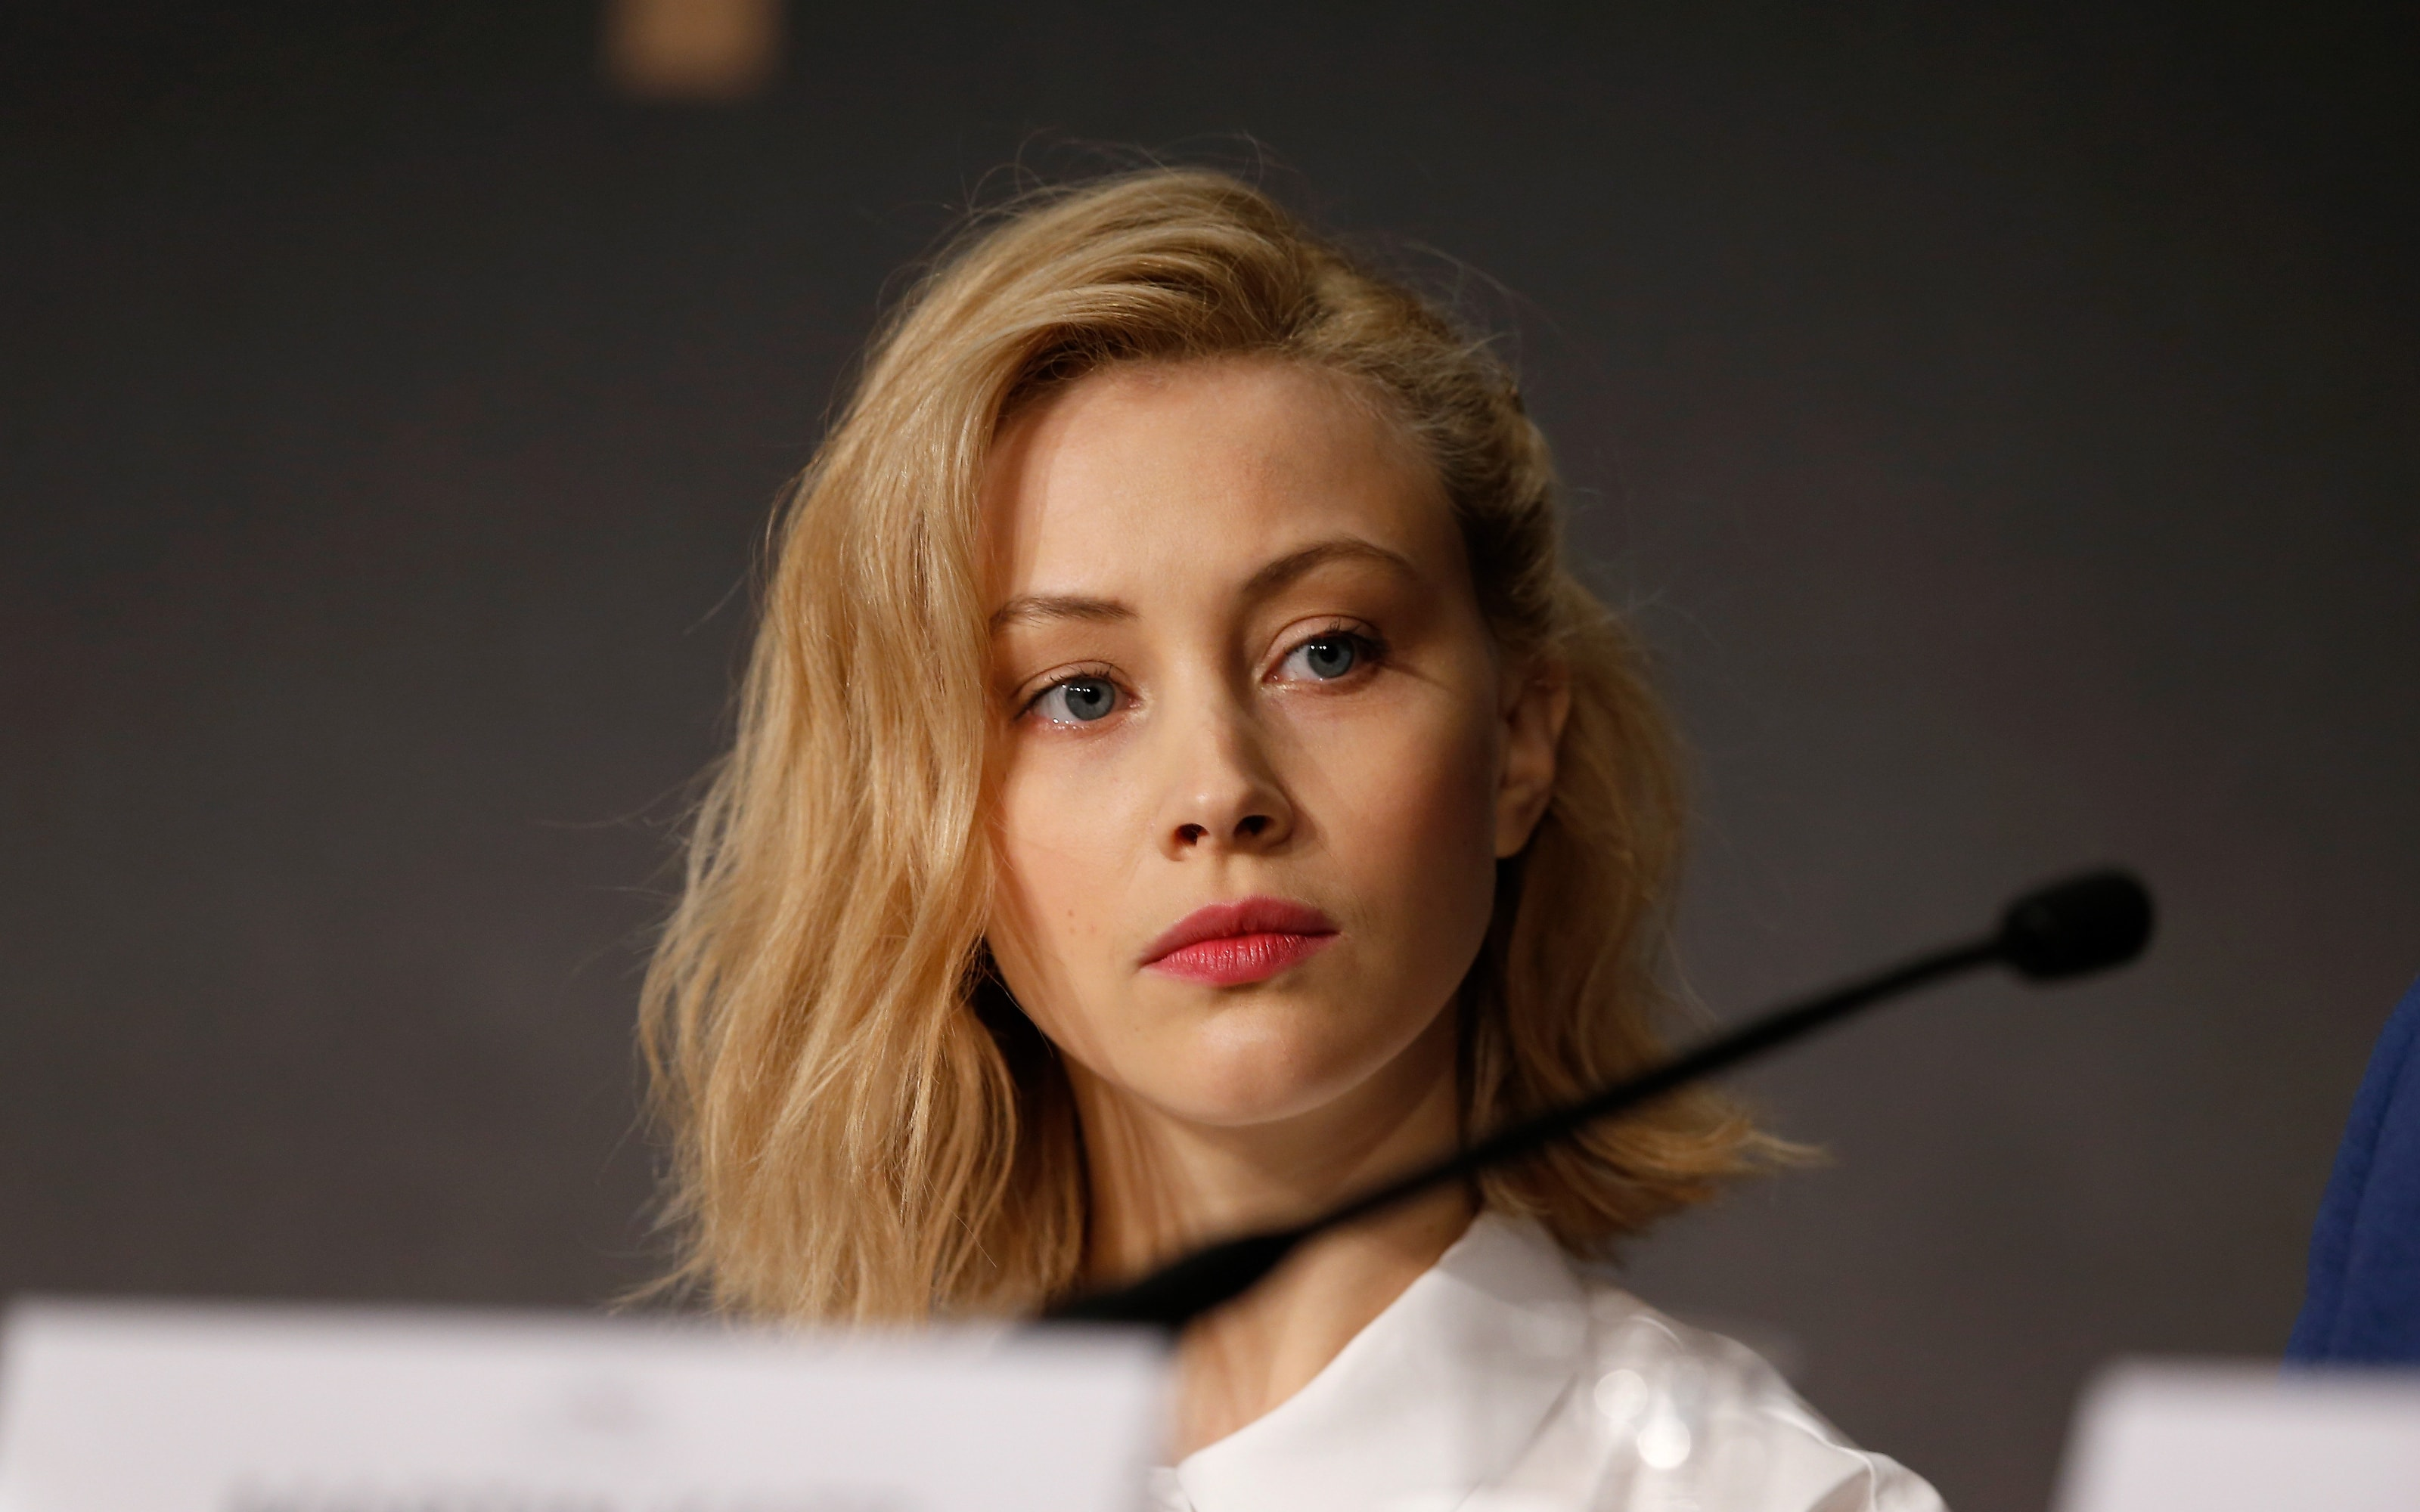 Sarah Gadons Desktop wallpapers